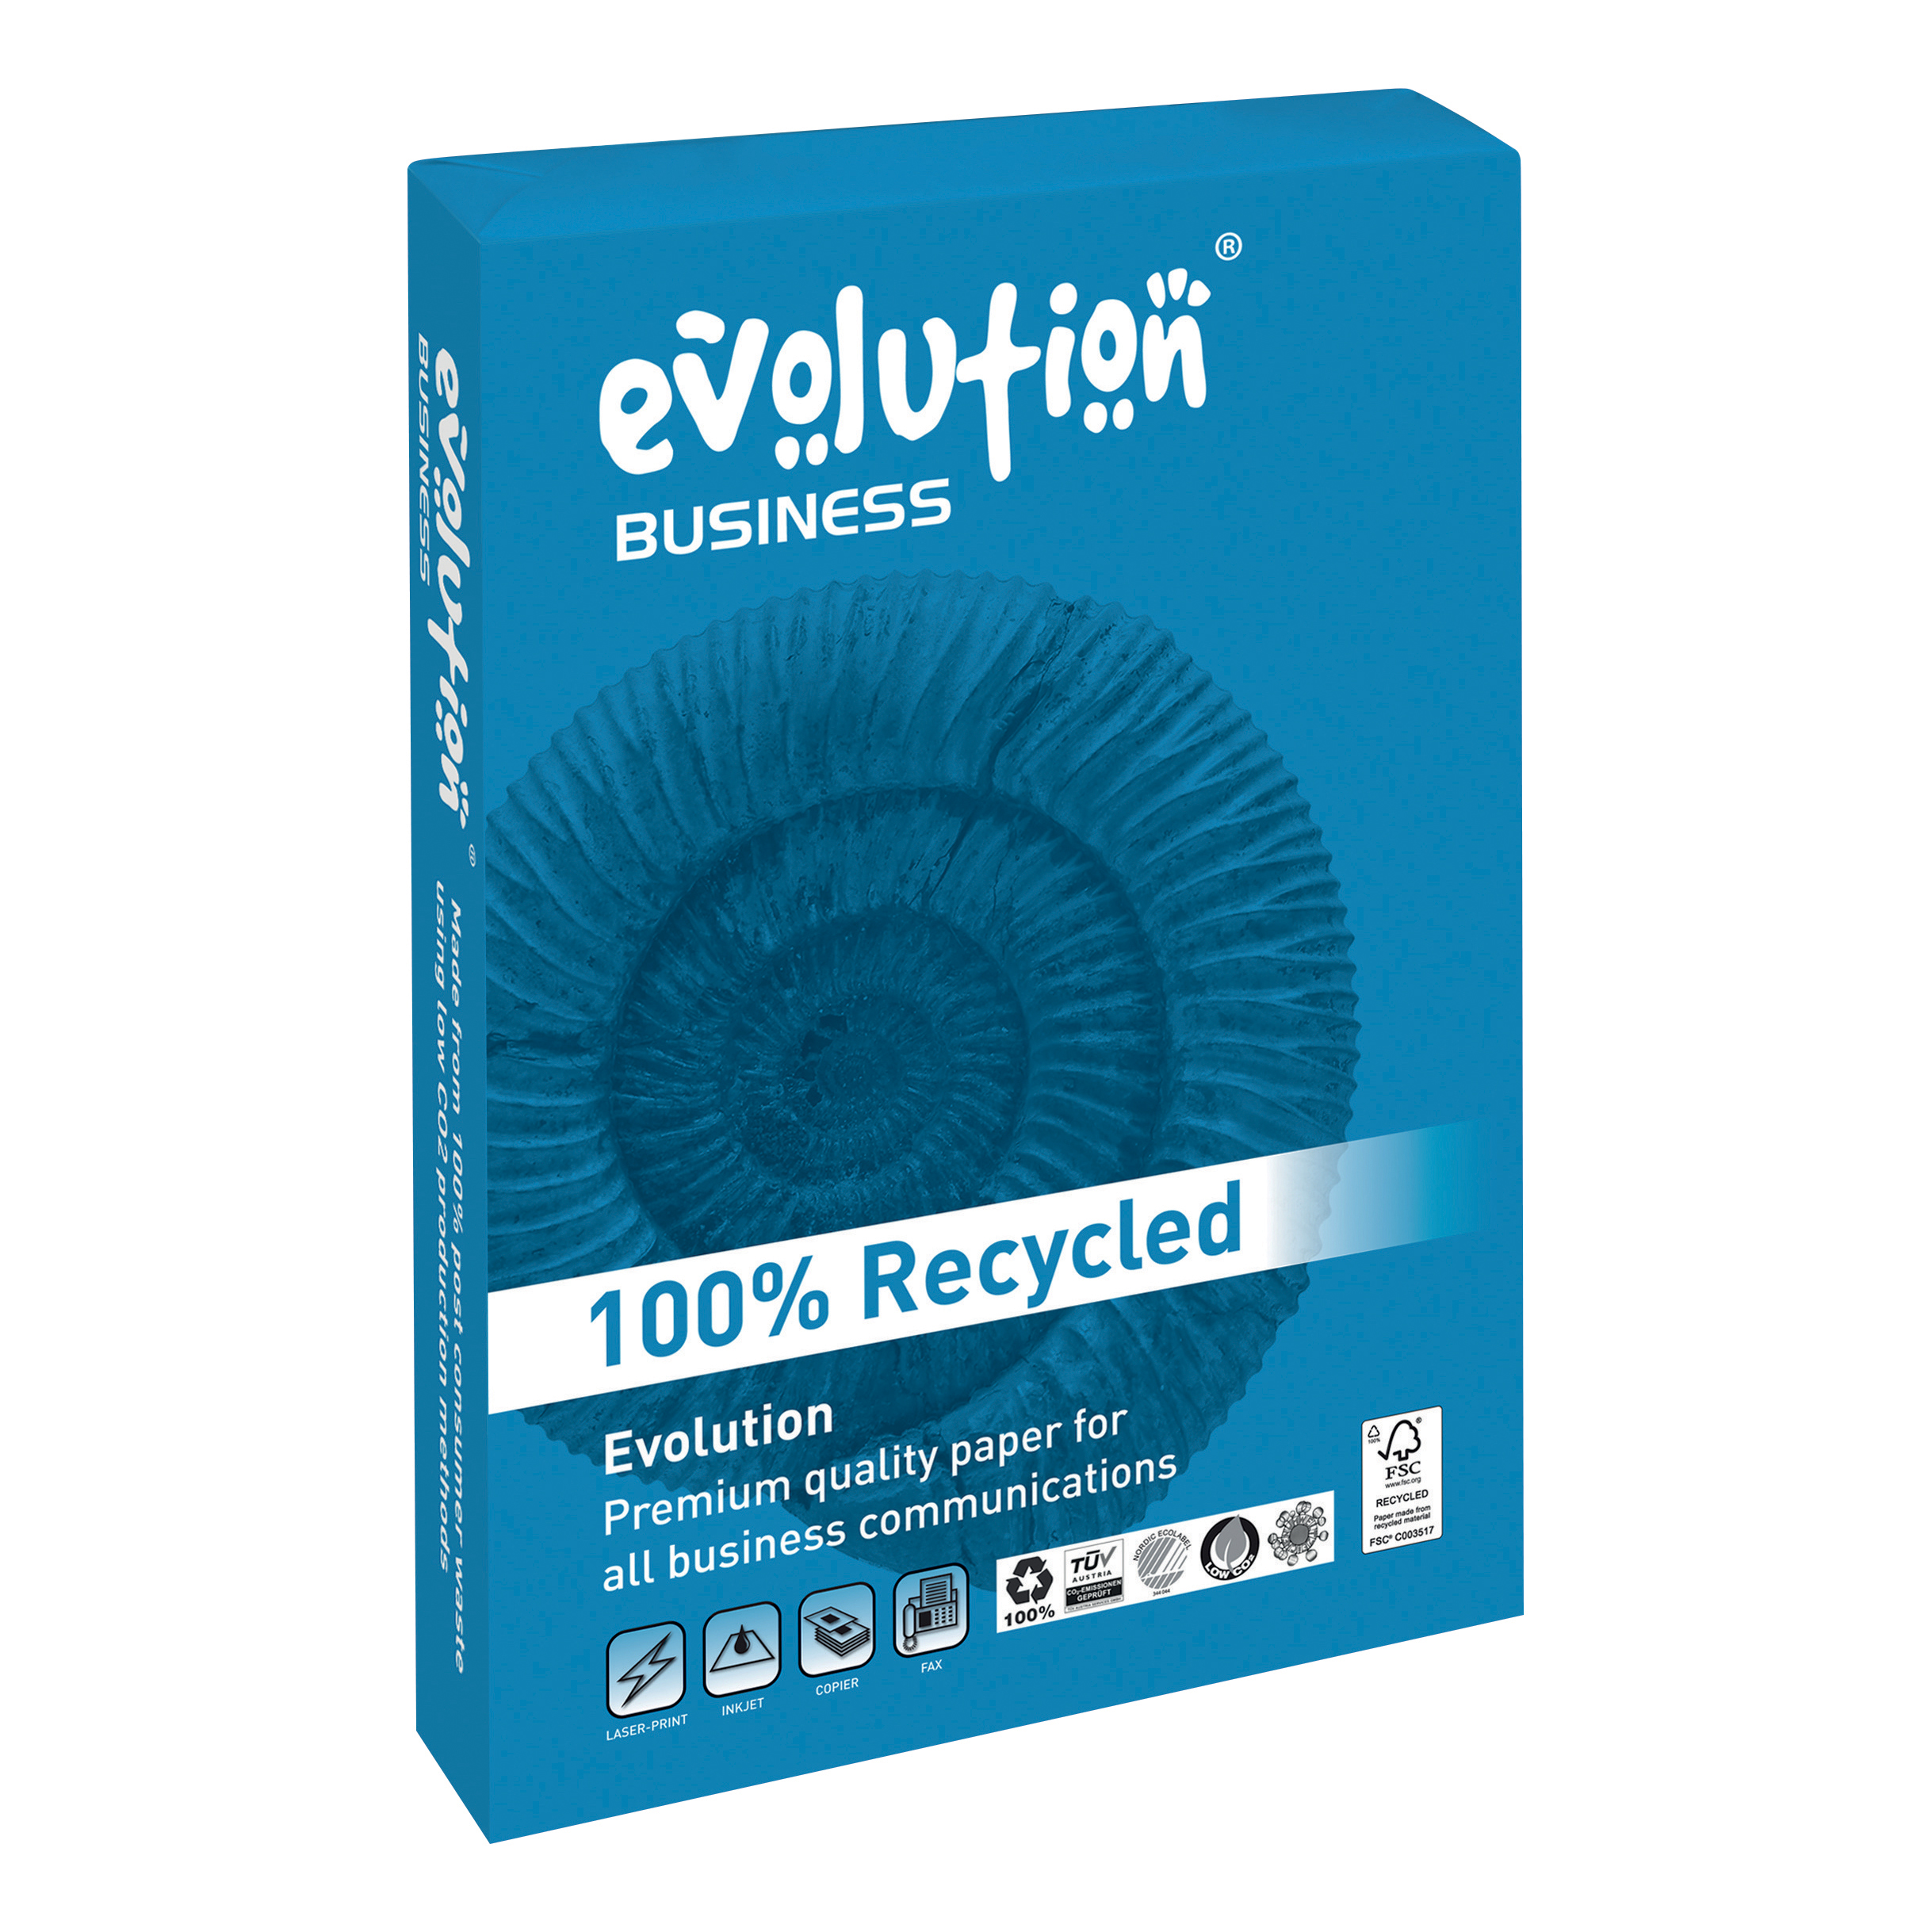 Evolution Business Recycled Paper 80gsm FSC A4 White Ref EVBU2180 [500 Sheets]